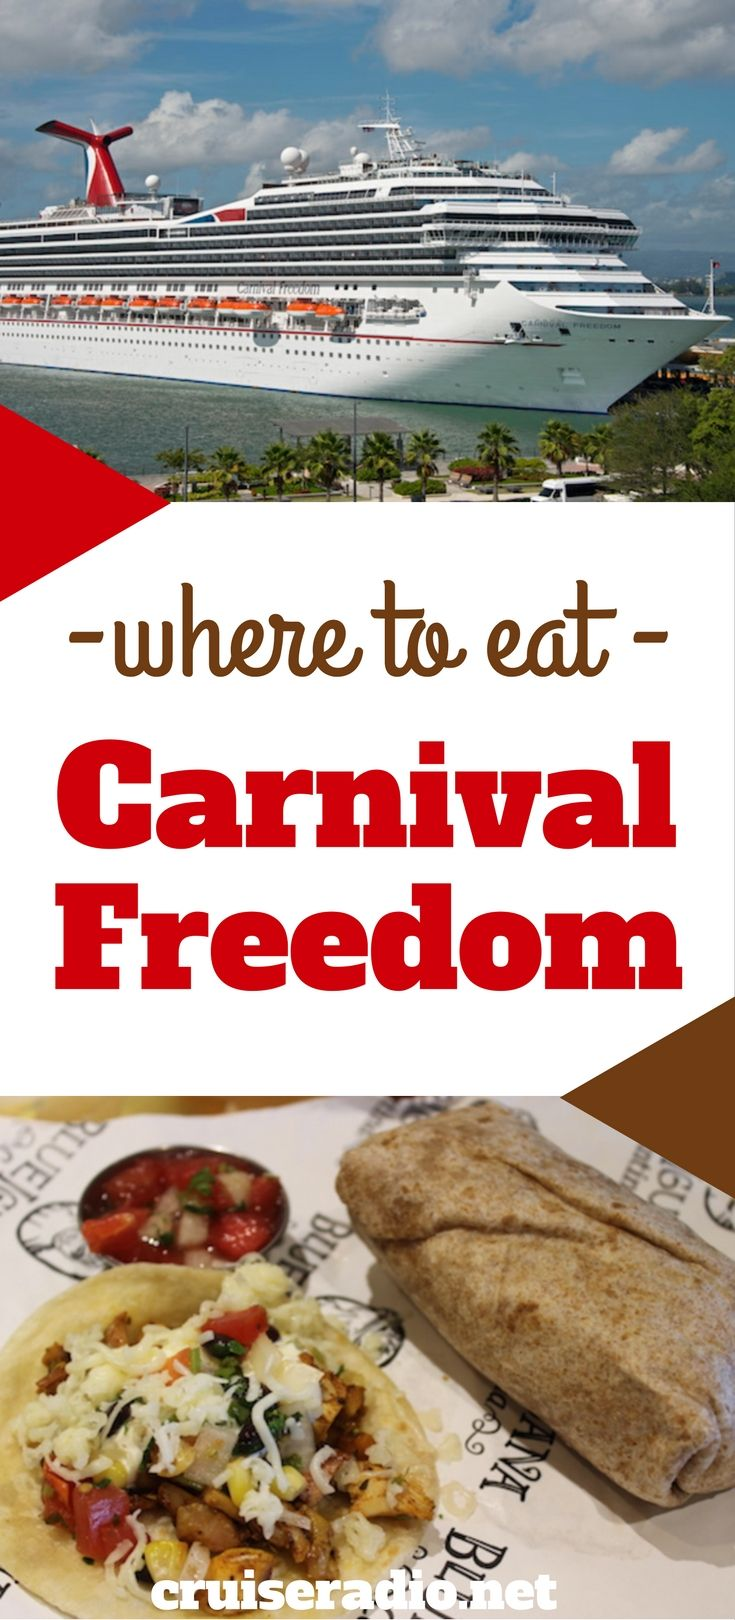 #Carnival #cruise #food #restaurant #eat #eating #vacation #carnivalfreedom…